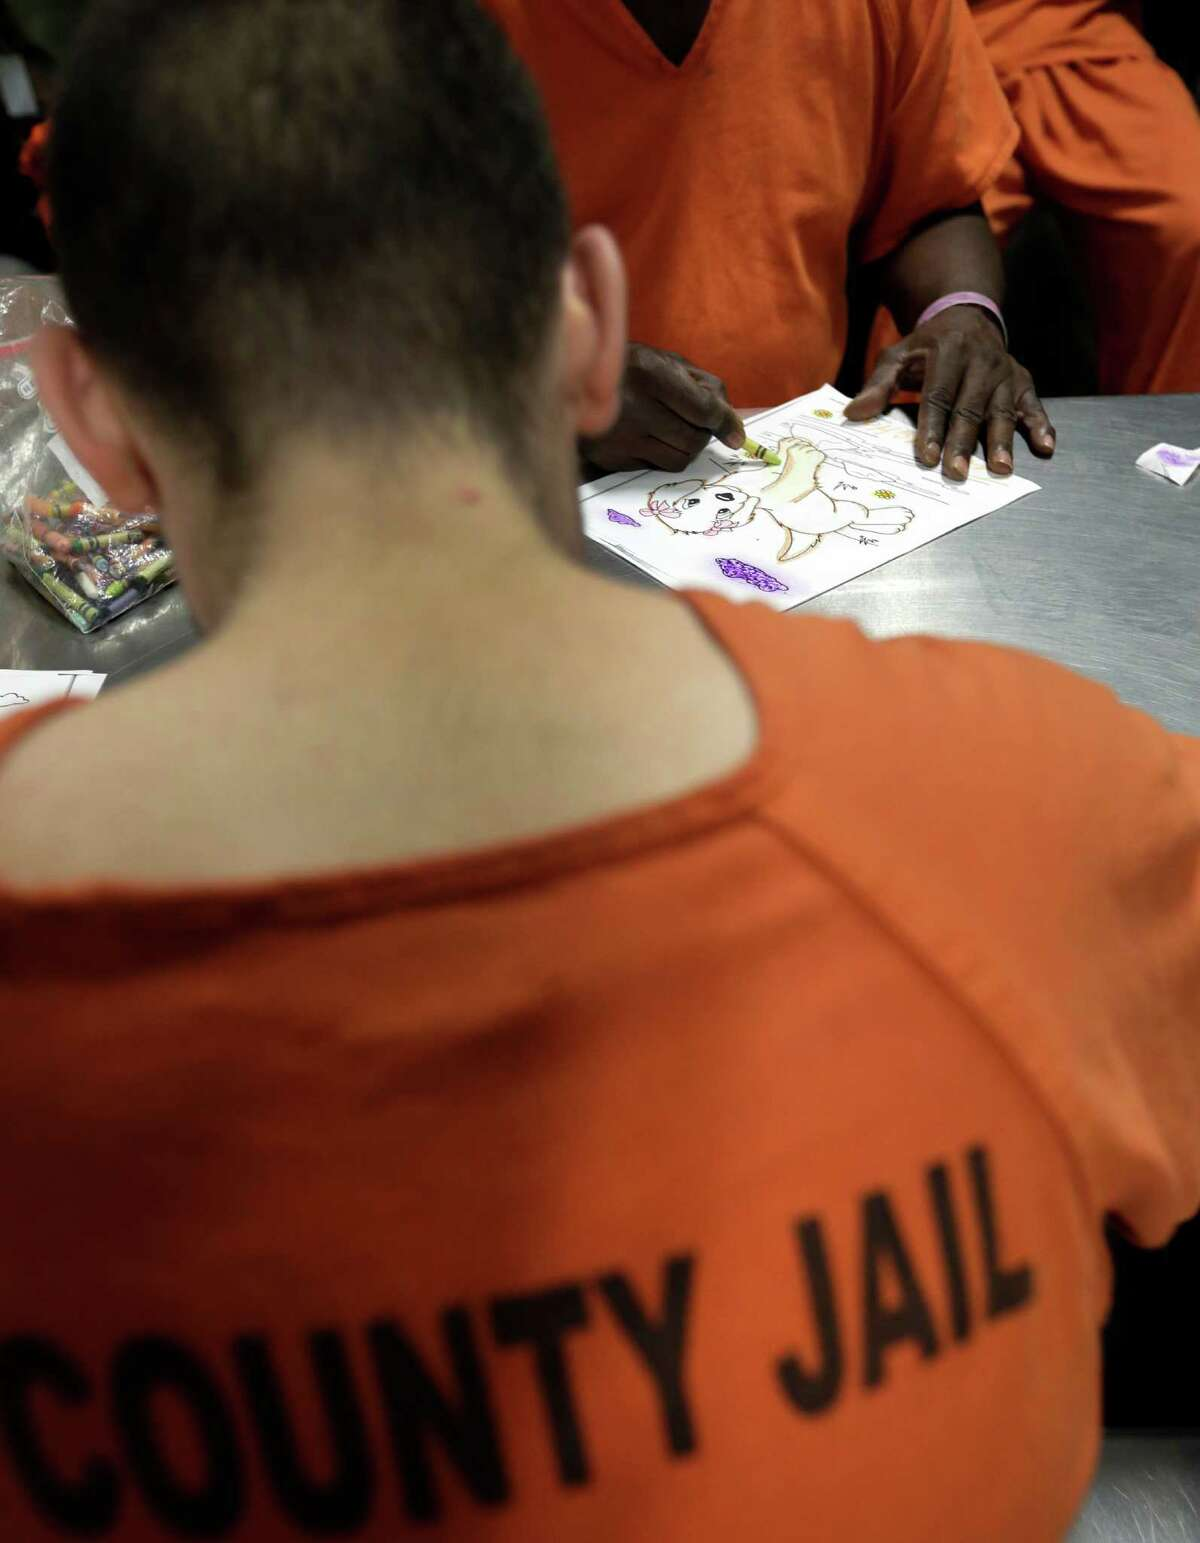 Inmates take part in a group therapy session in an acute unit of the mental heath unit at the Harris County Jail in Houston. (AP Photo/Eric Gay)